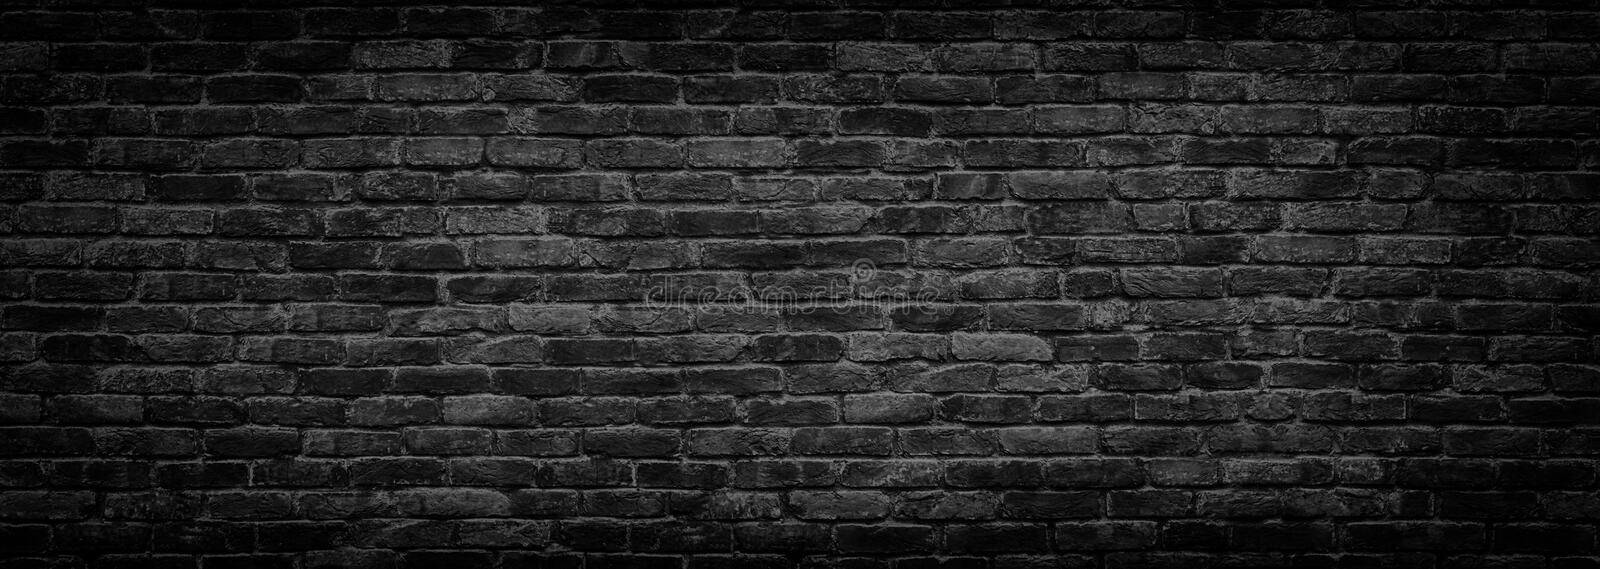 Black Brick Wall Panoramic Background For Design Stock ...